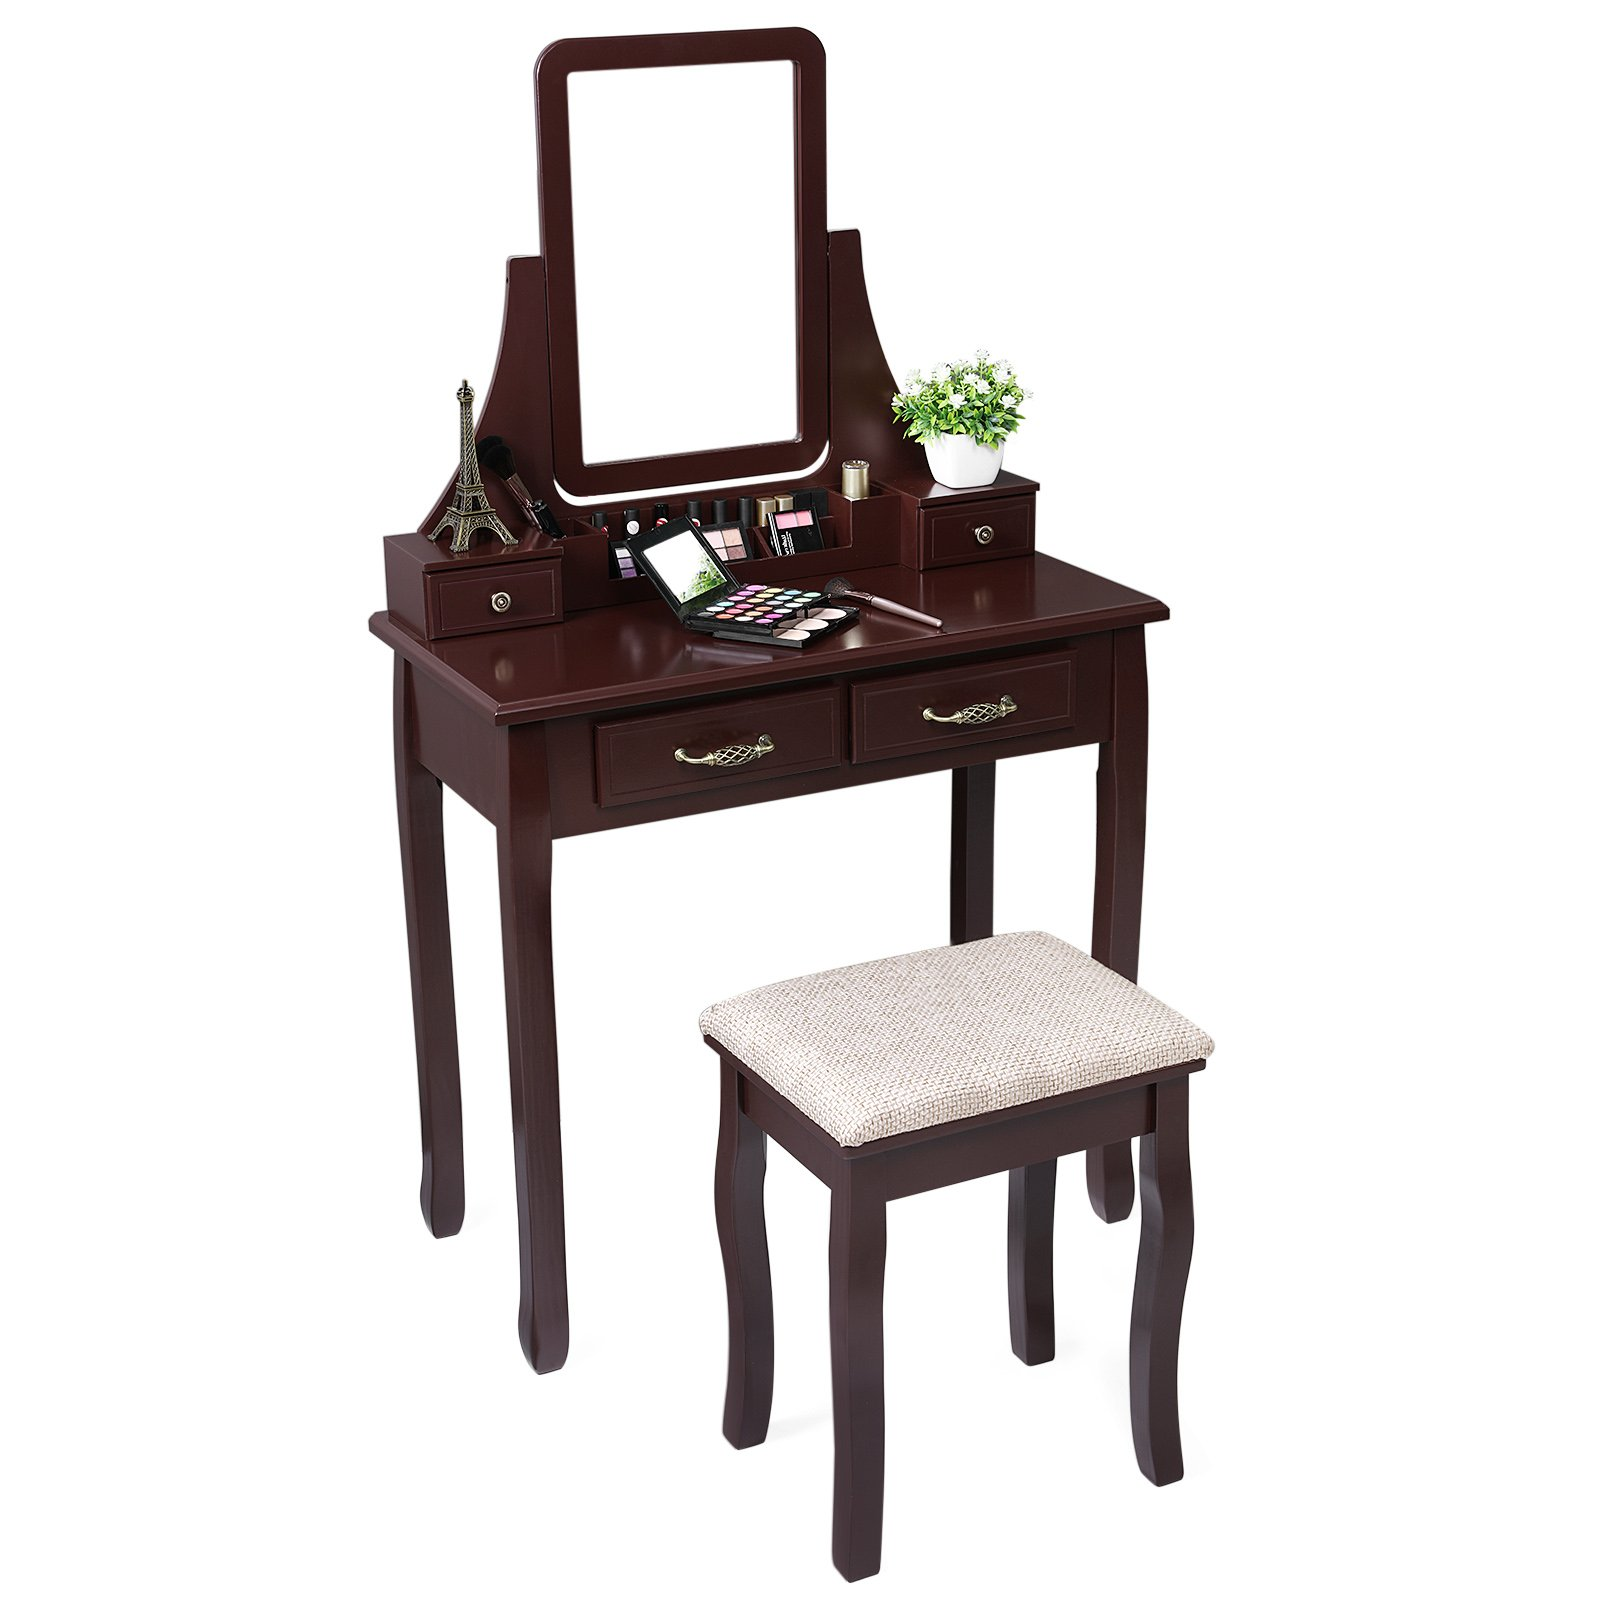 SONGMICS Vanity Set, 2 Large Sliding Drawers, Removable Makeup Organizer for Brushes Nail Polishes, Dressing Table with Mirror and Stool Brown URDT12K